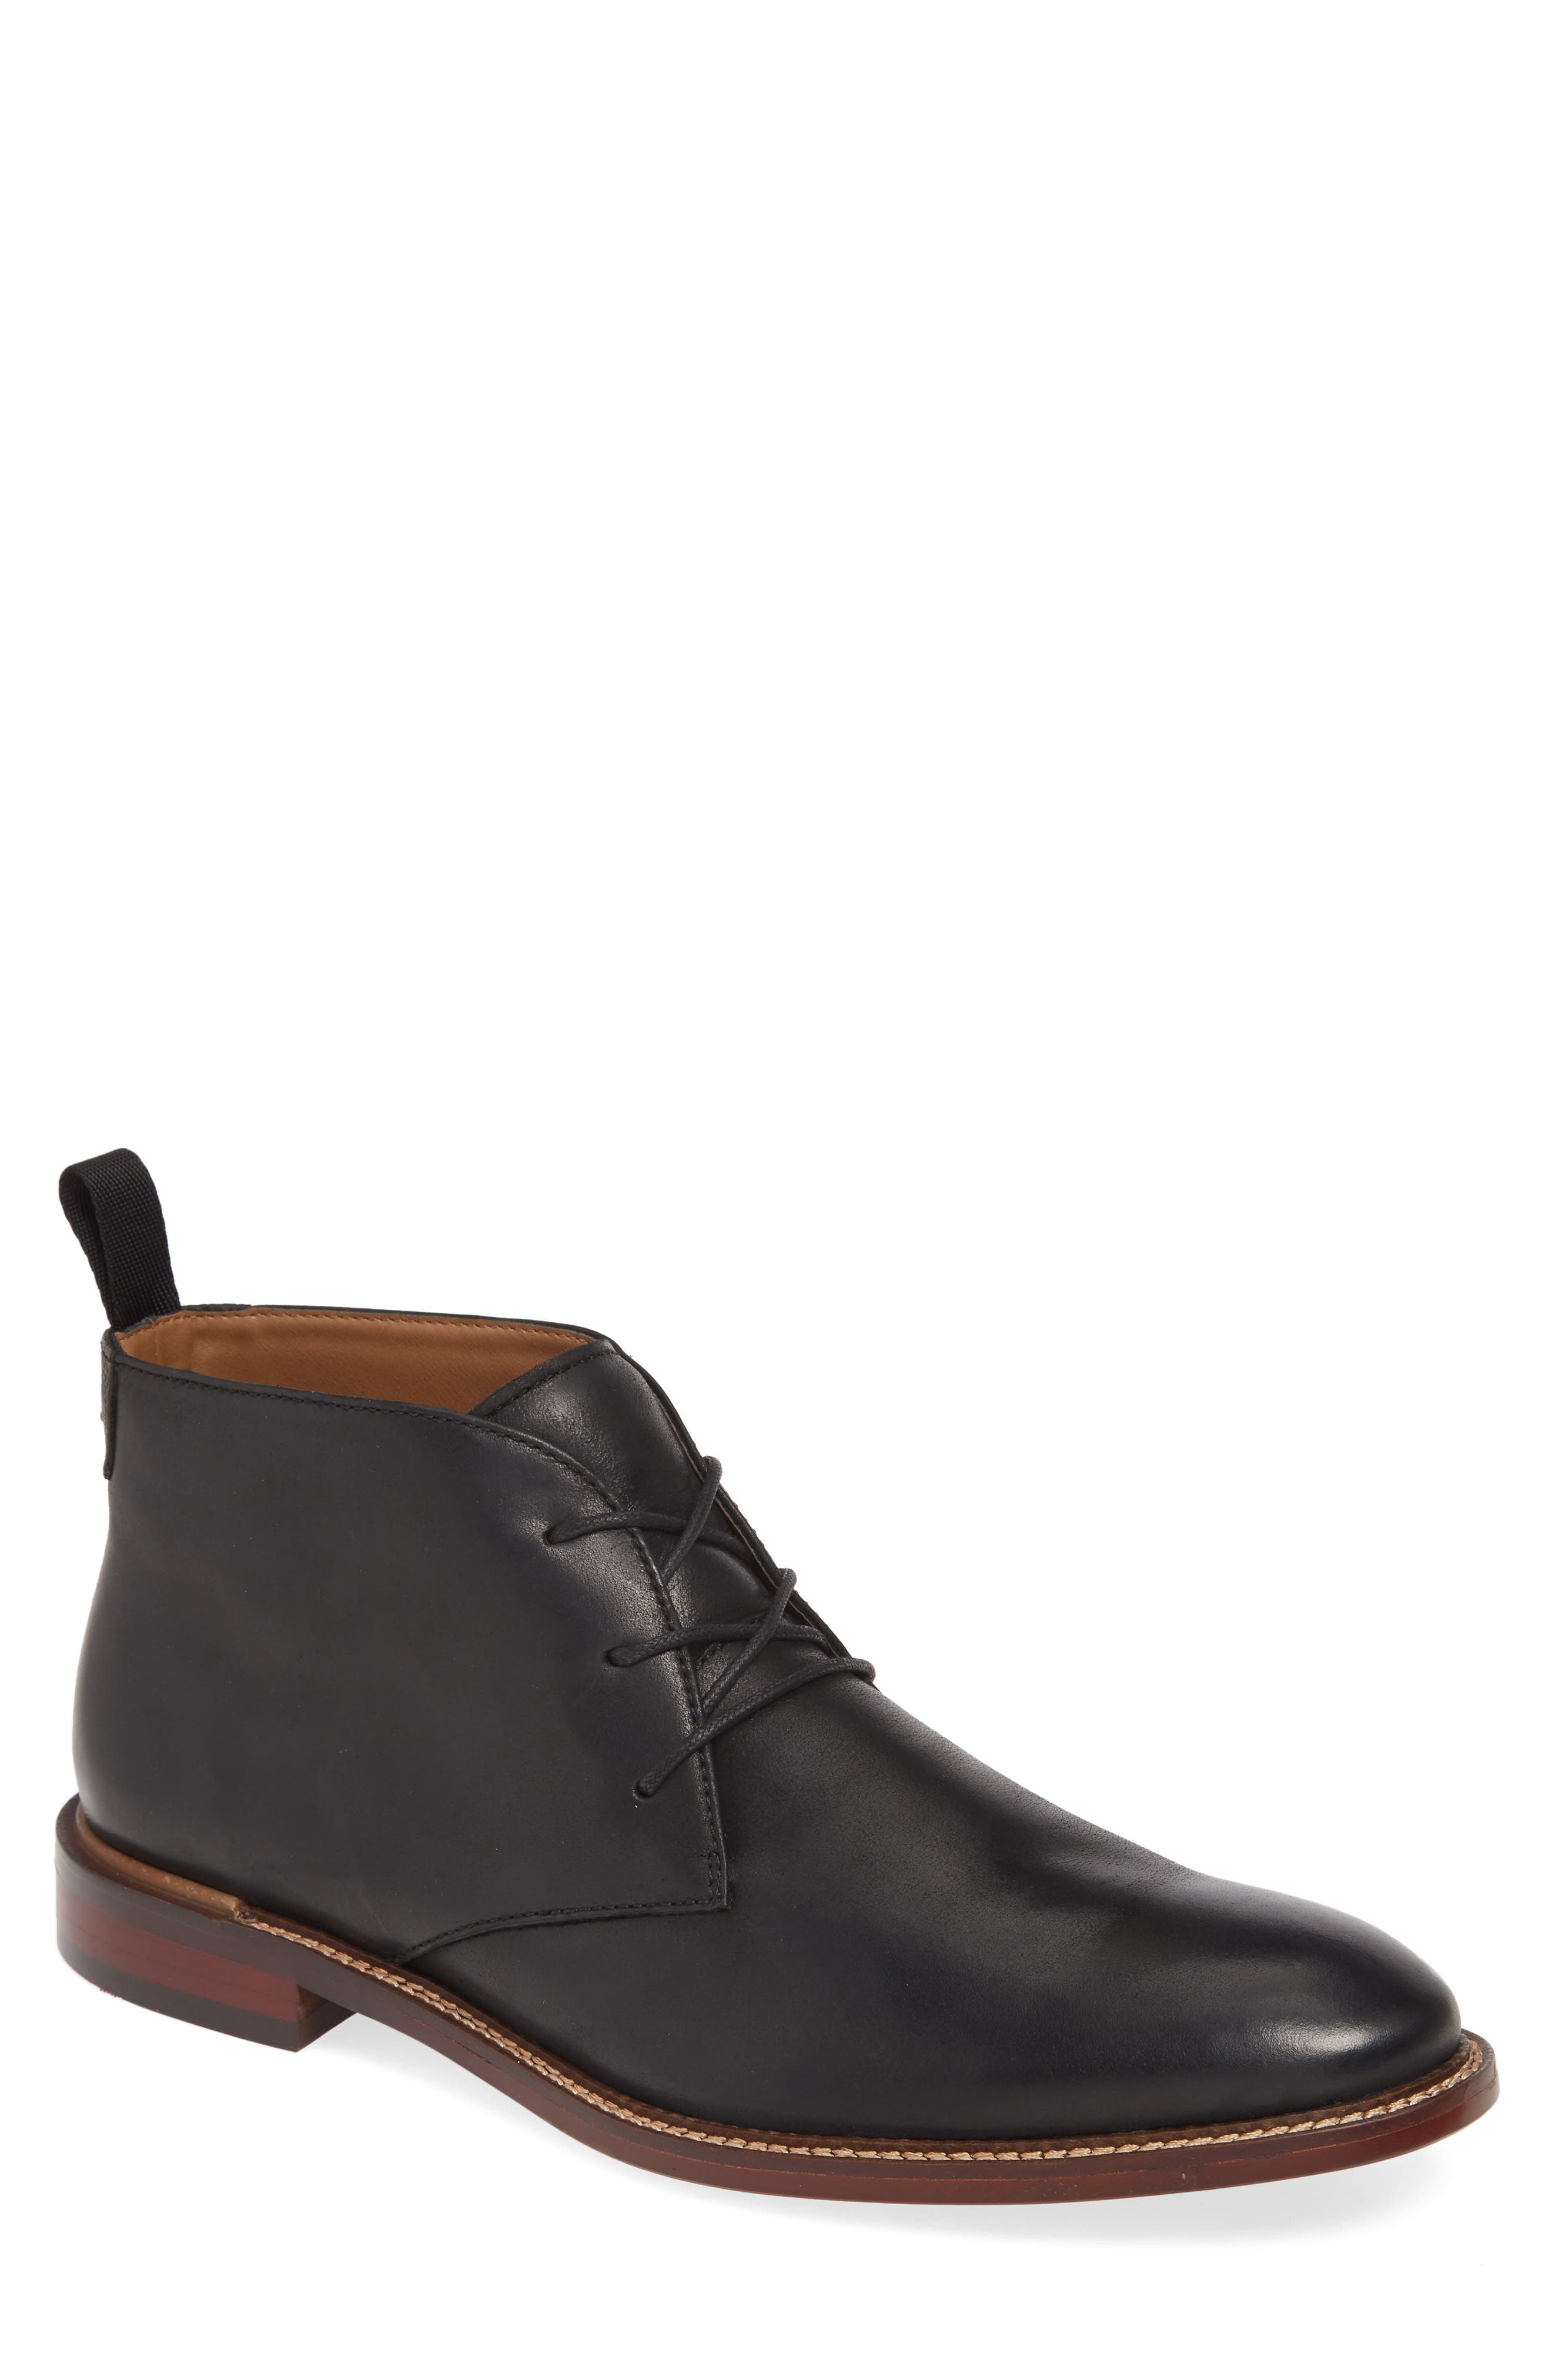 Image of NORDSTROM MEN'S SHOP Chase Chukka Boot